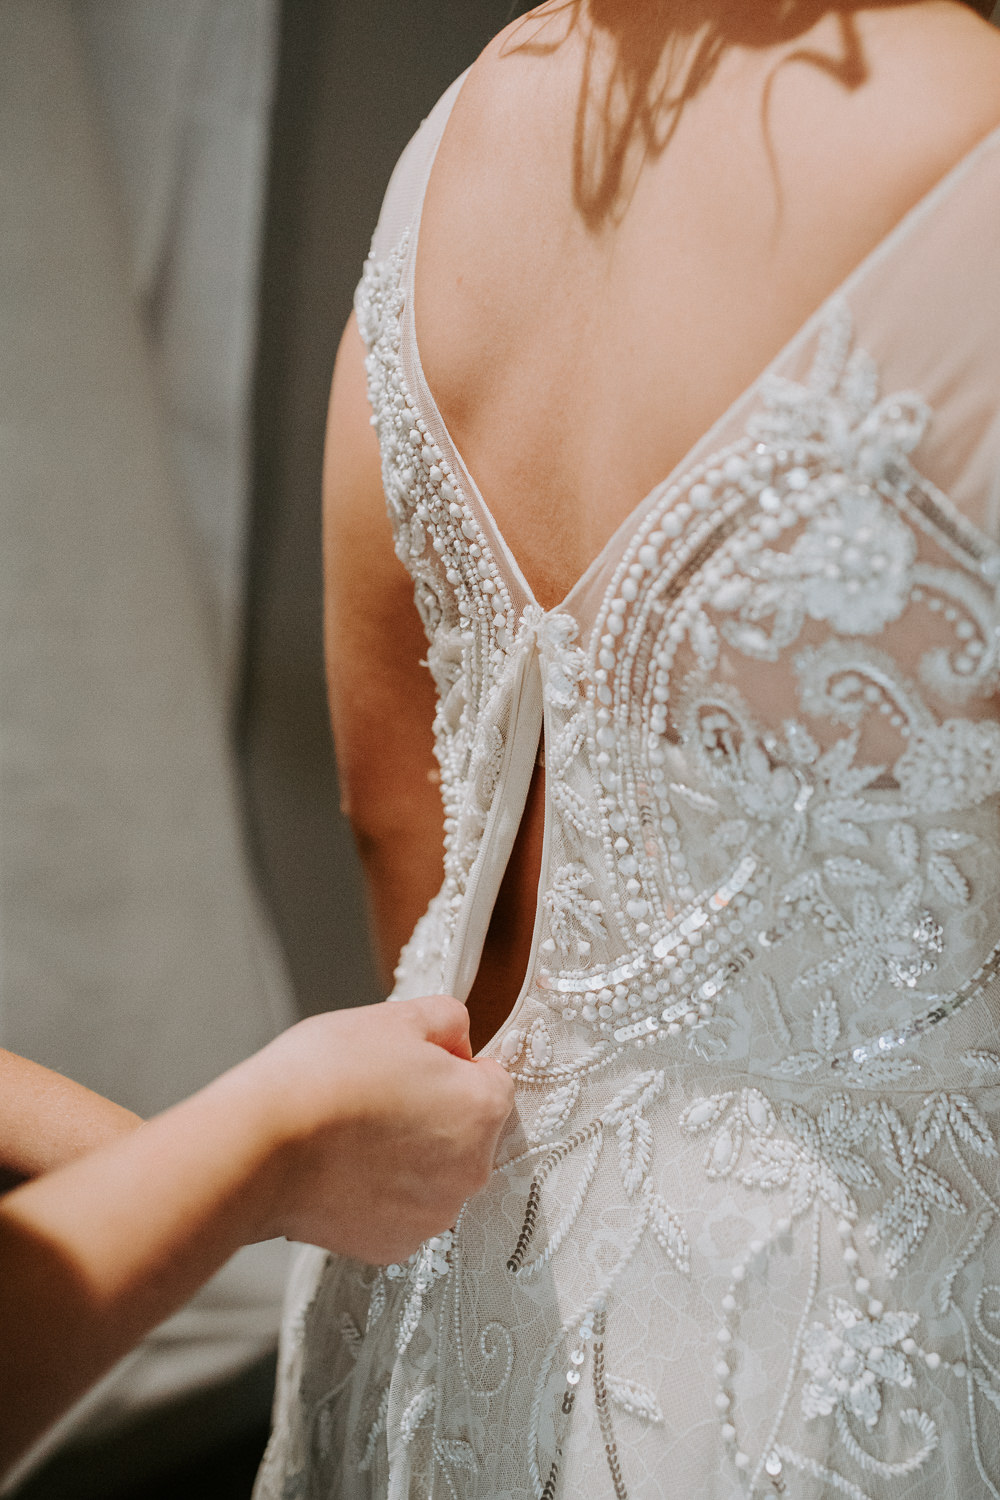 Dress Gown Bride Bridal Back Beaded Phase Eight Barn Upcote Wedding Siobhan Beales Photography